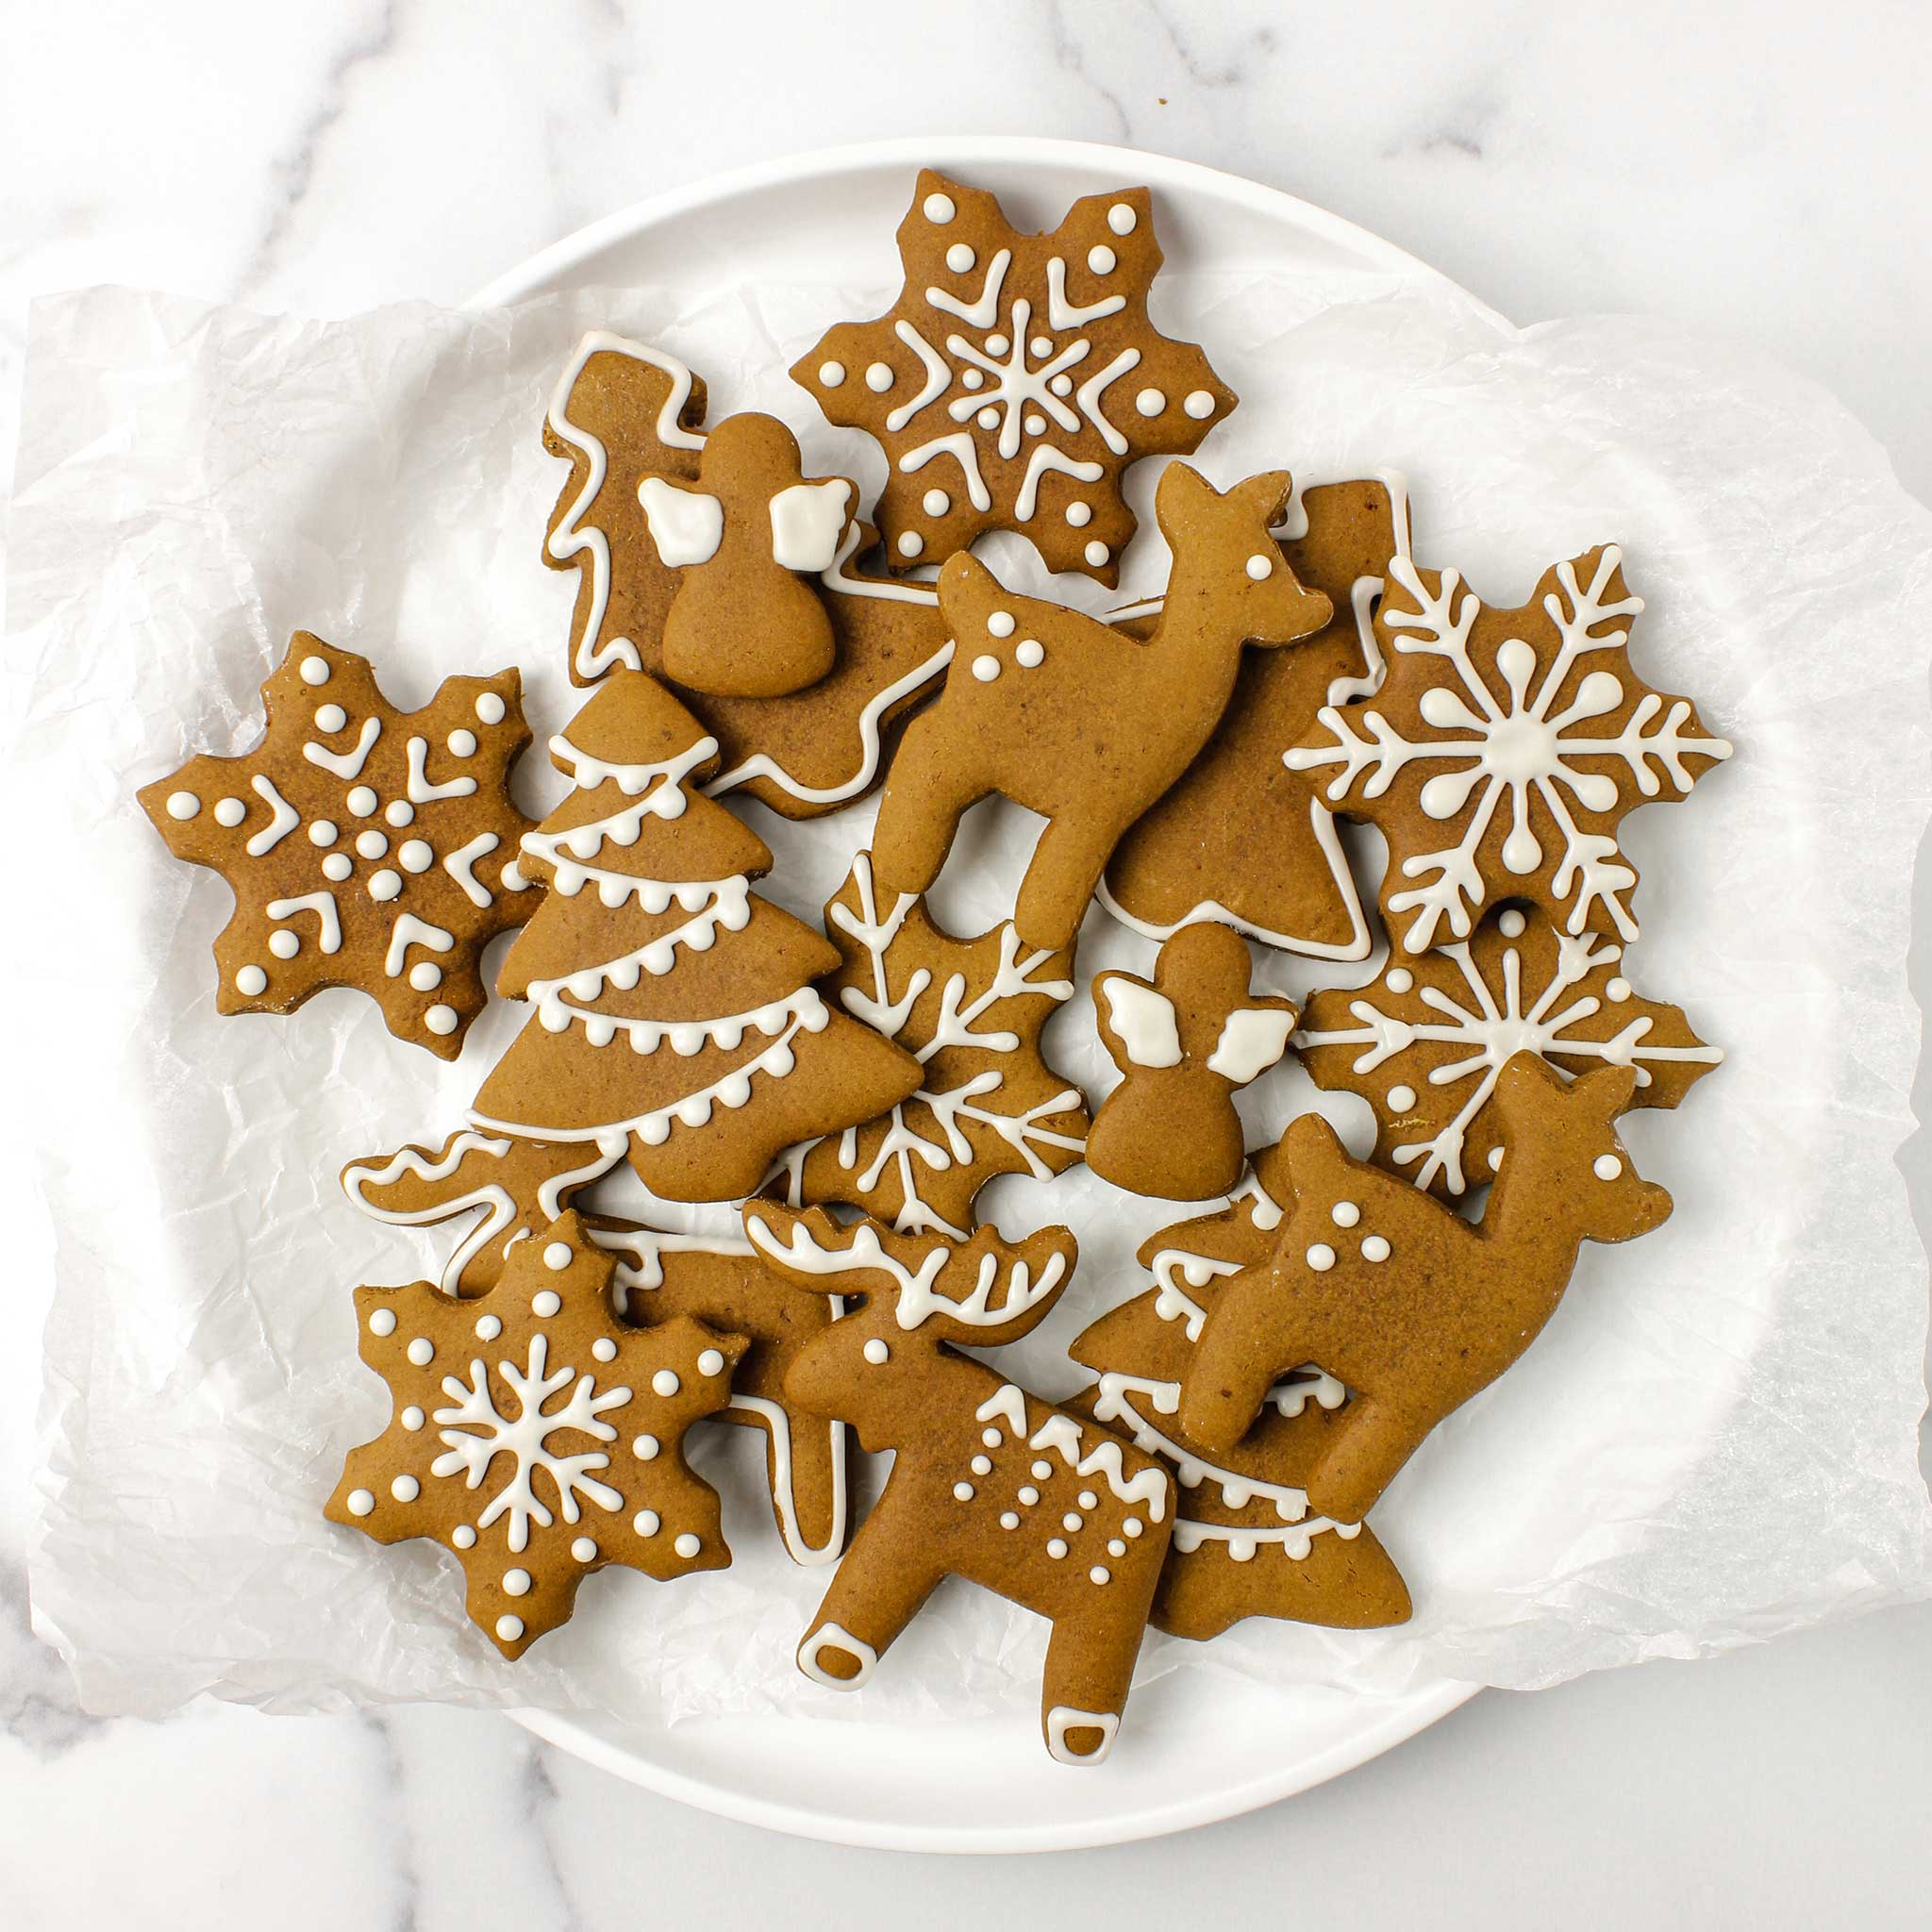 Gluten free gingerbread cookies decorated with white icing